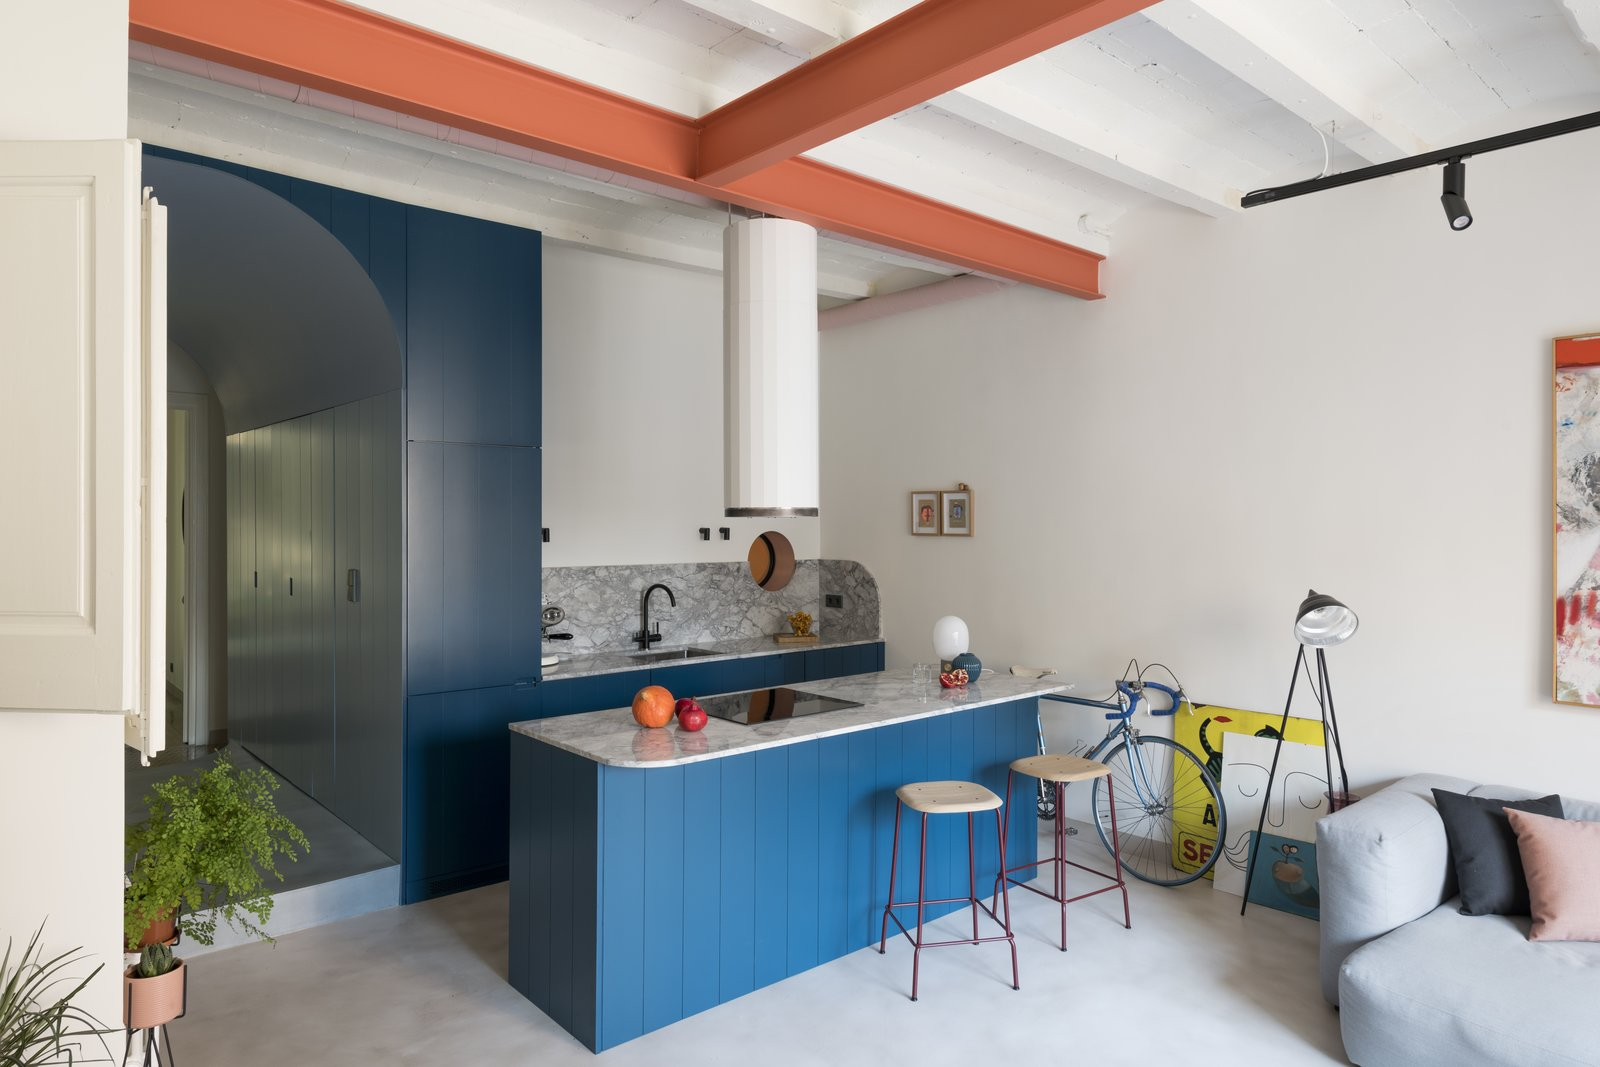 A Compact, Choppy Apartment in Barcelona Gets a Colorful, Quirky Remodel